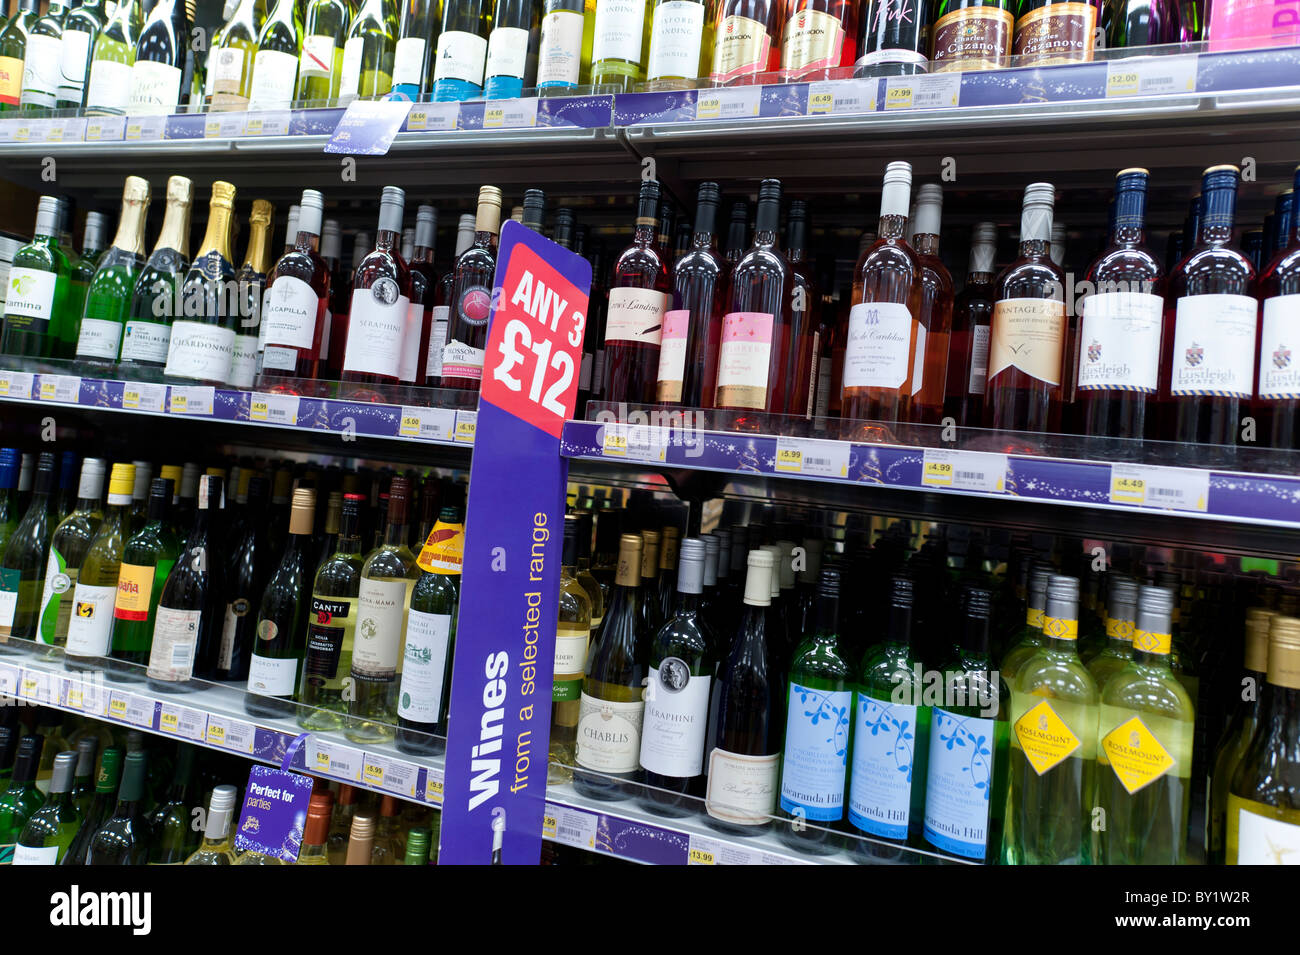 Bottles of wine on sale in a Co-op supermarket, UK - Stock Image